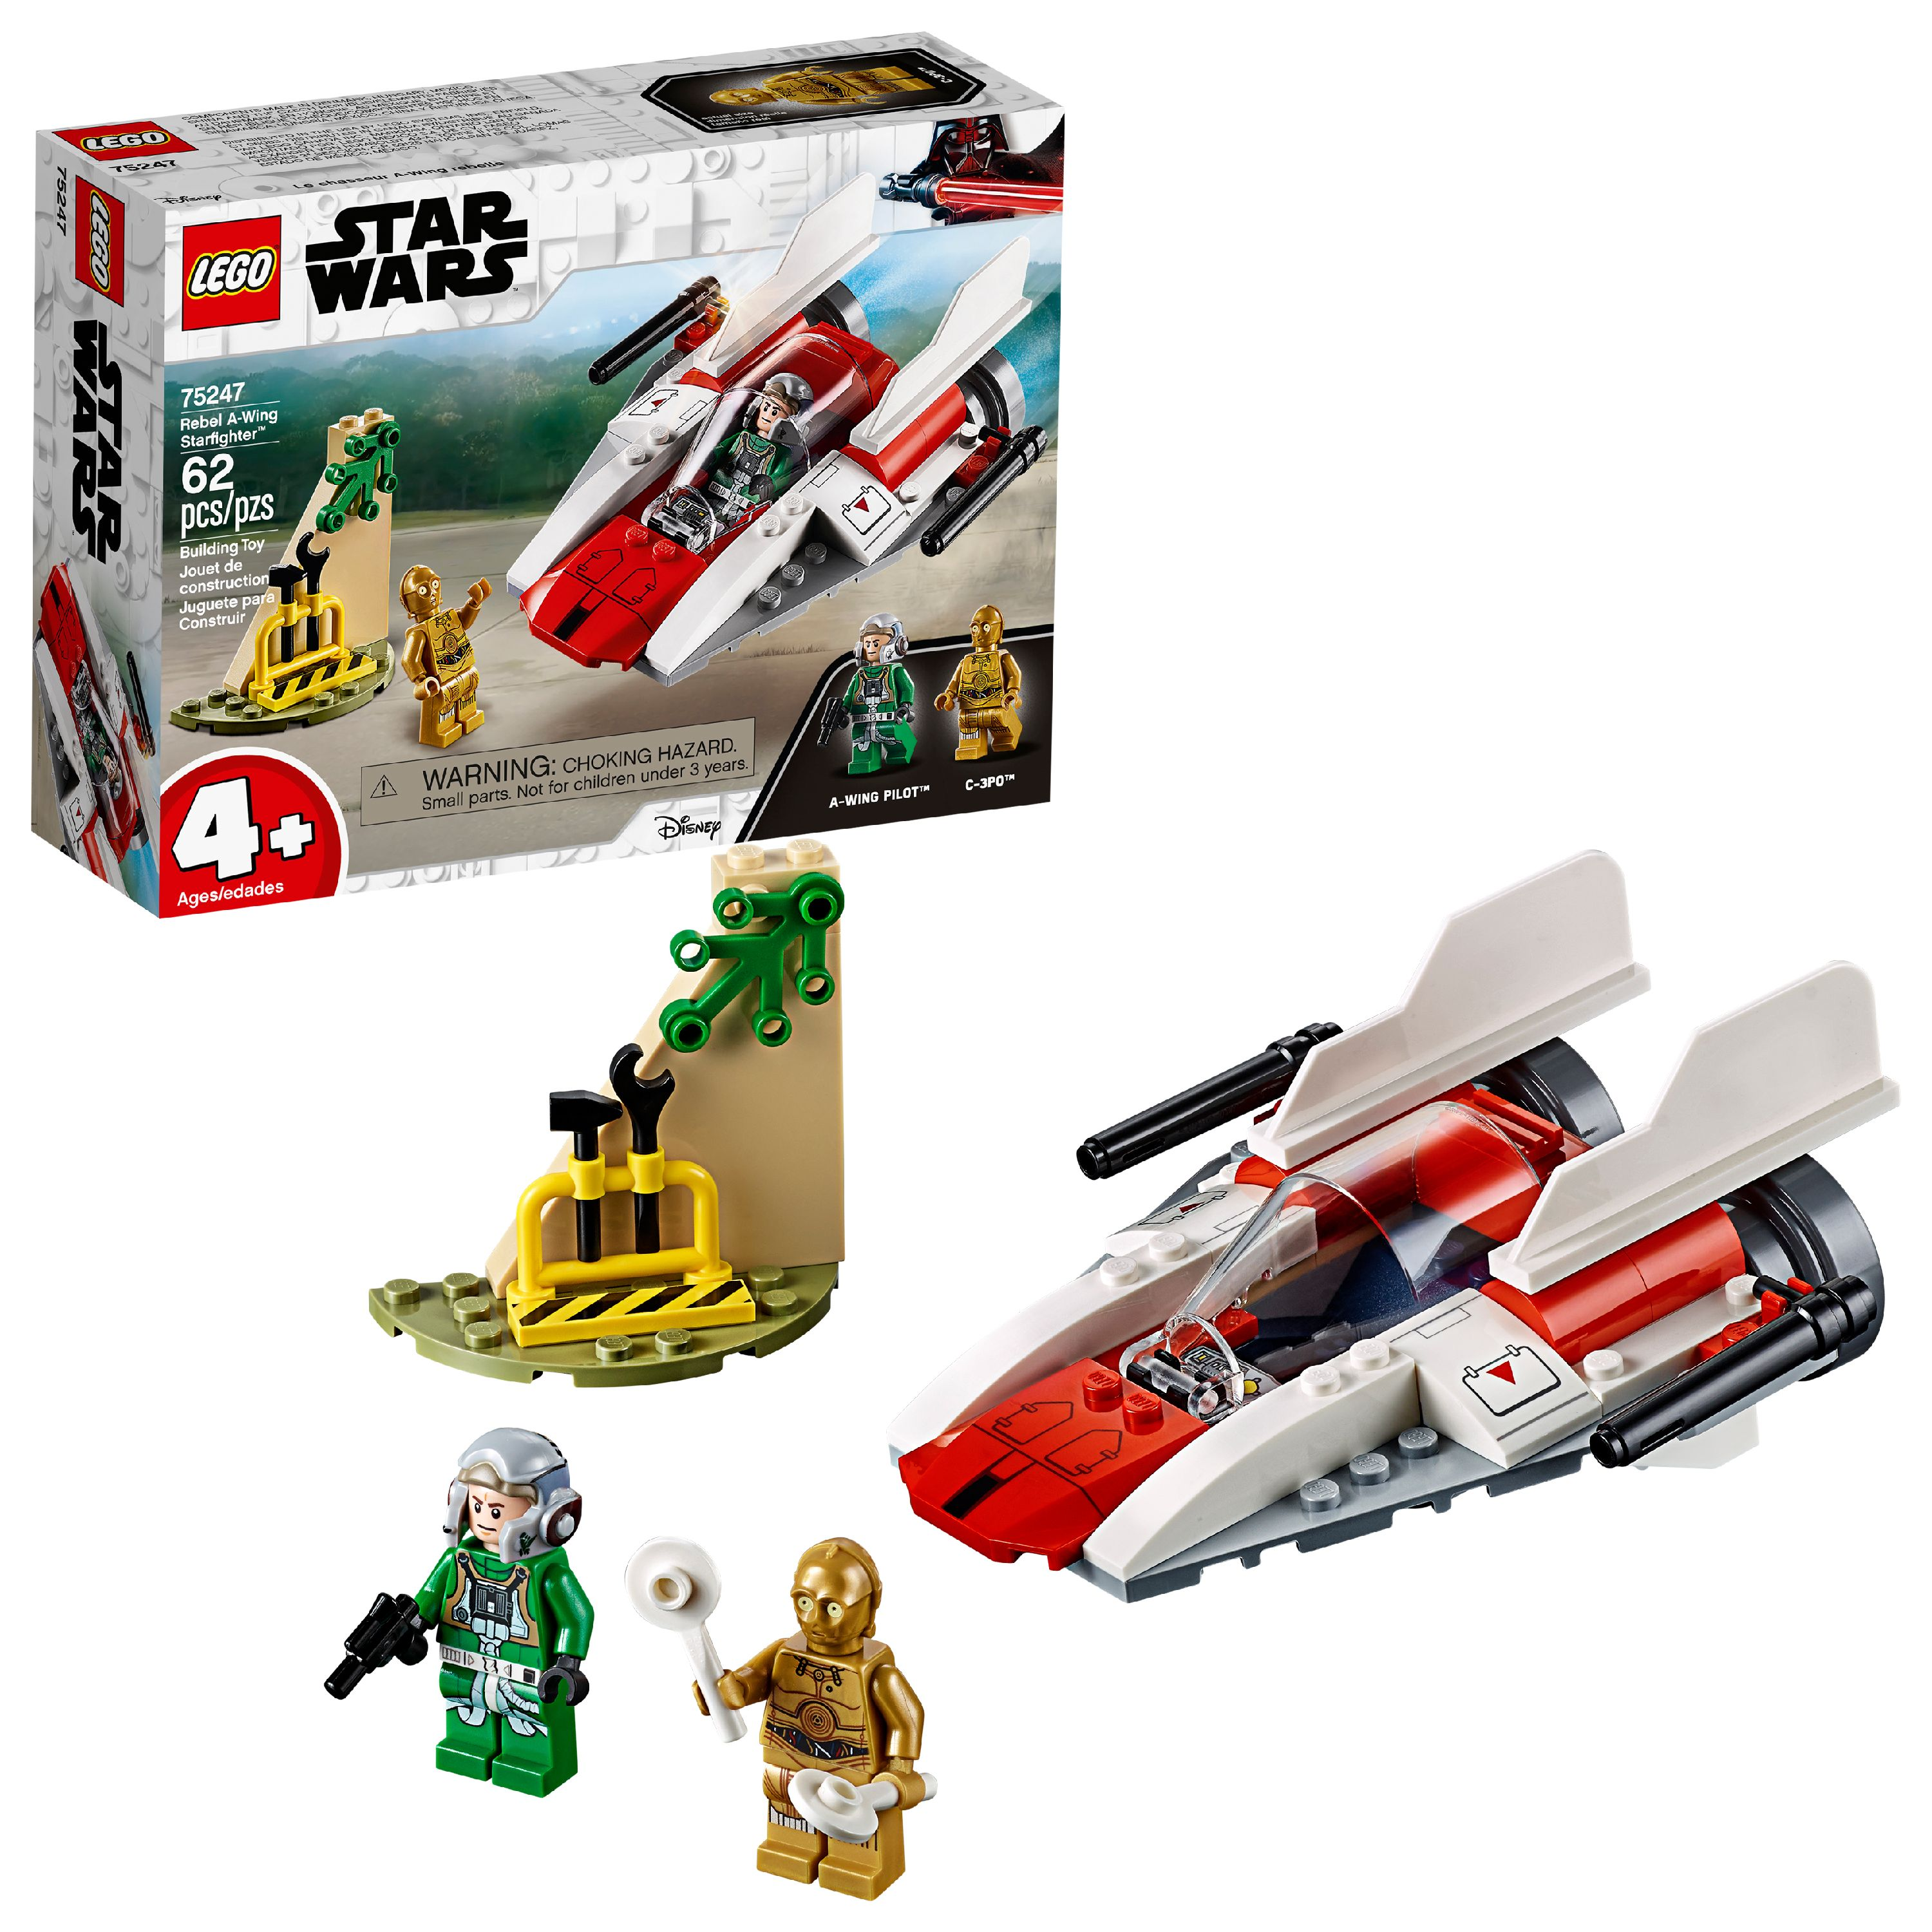 LEGO Star Wars TM Rebel A-Wing Starfighter 75247 Building Set